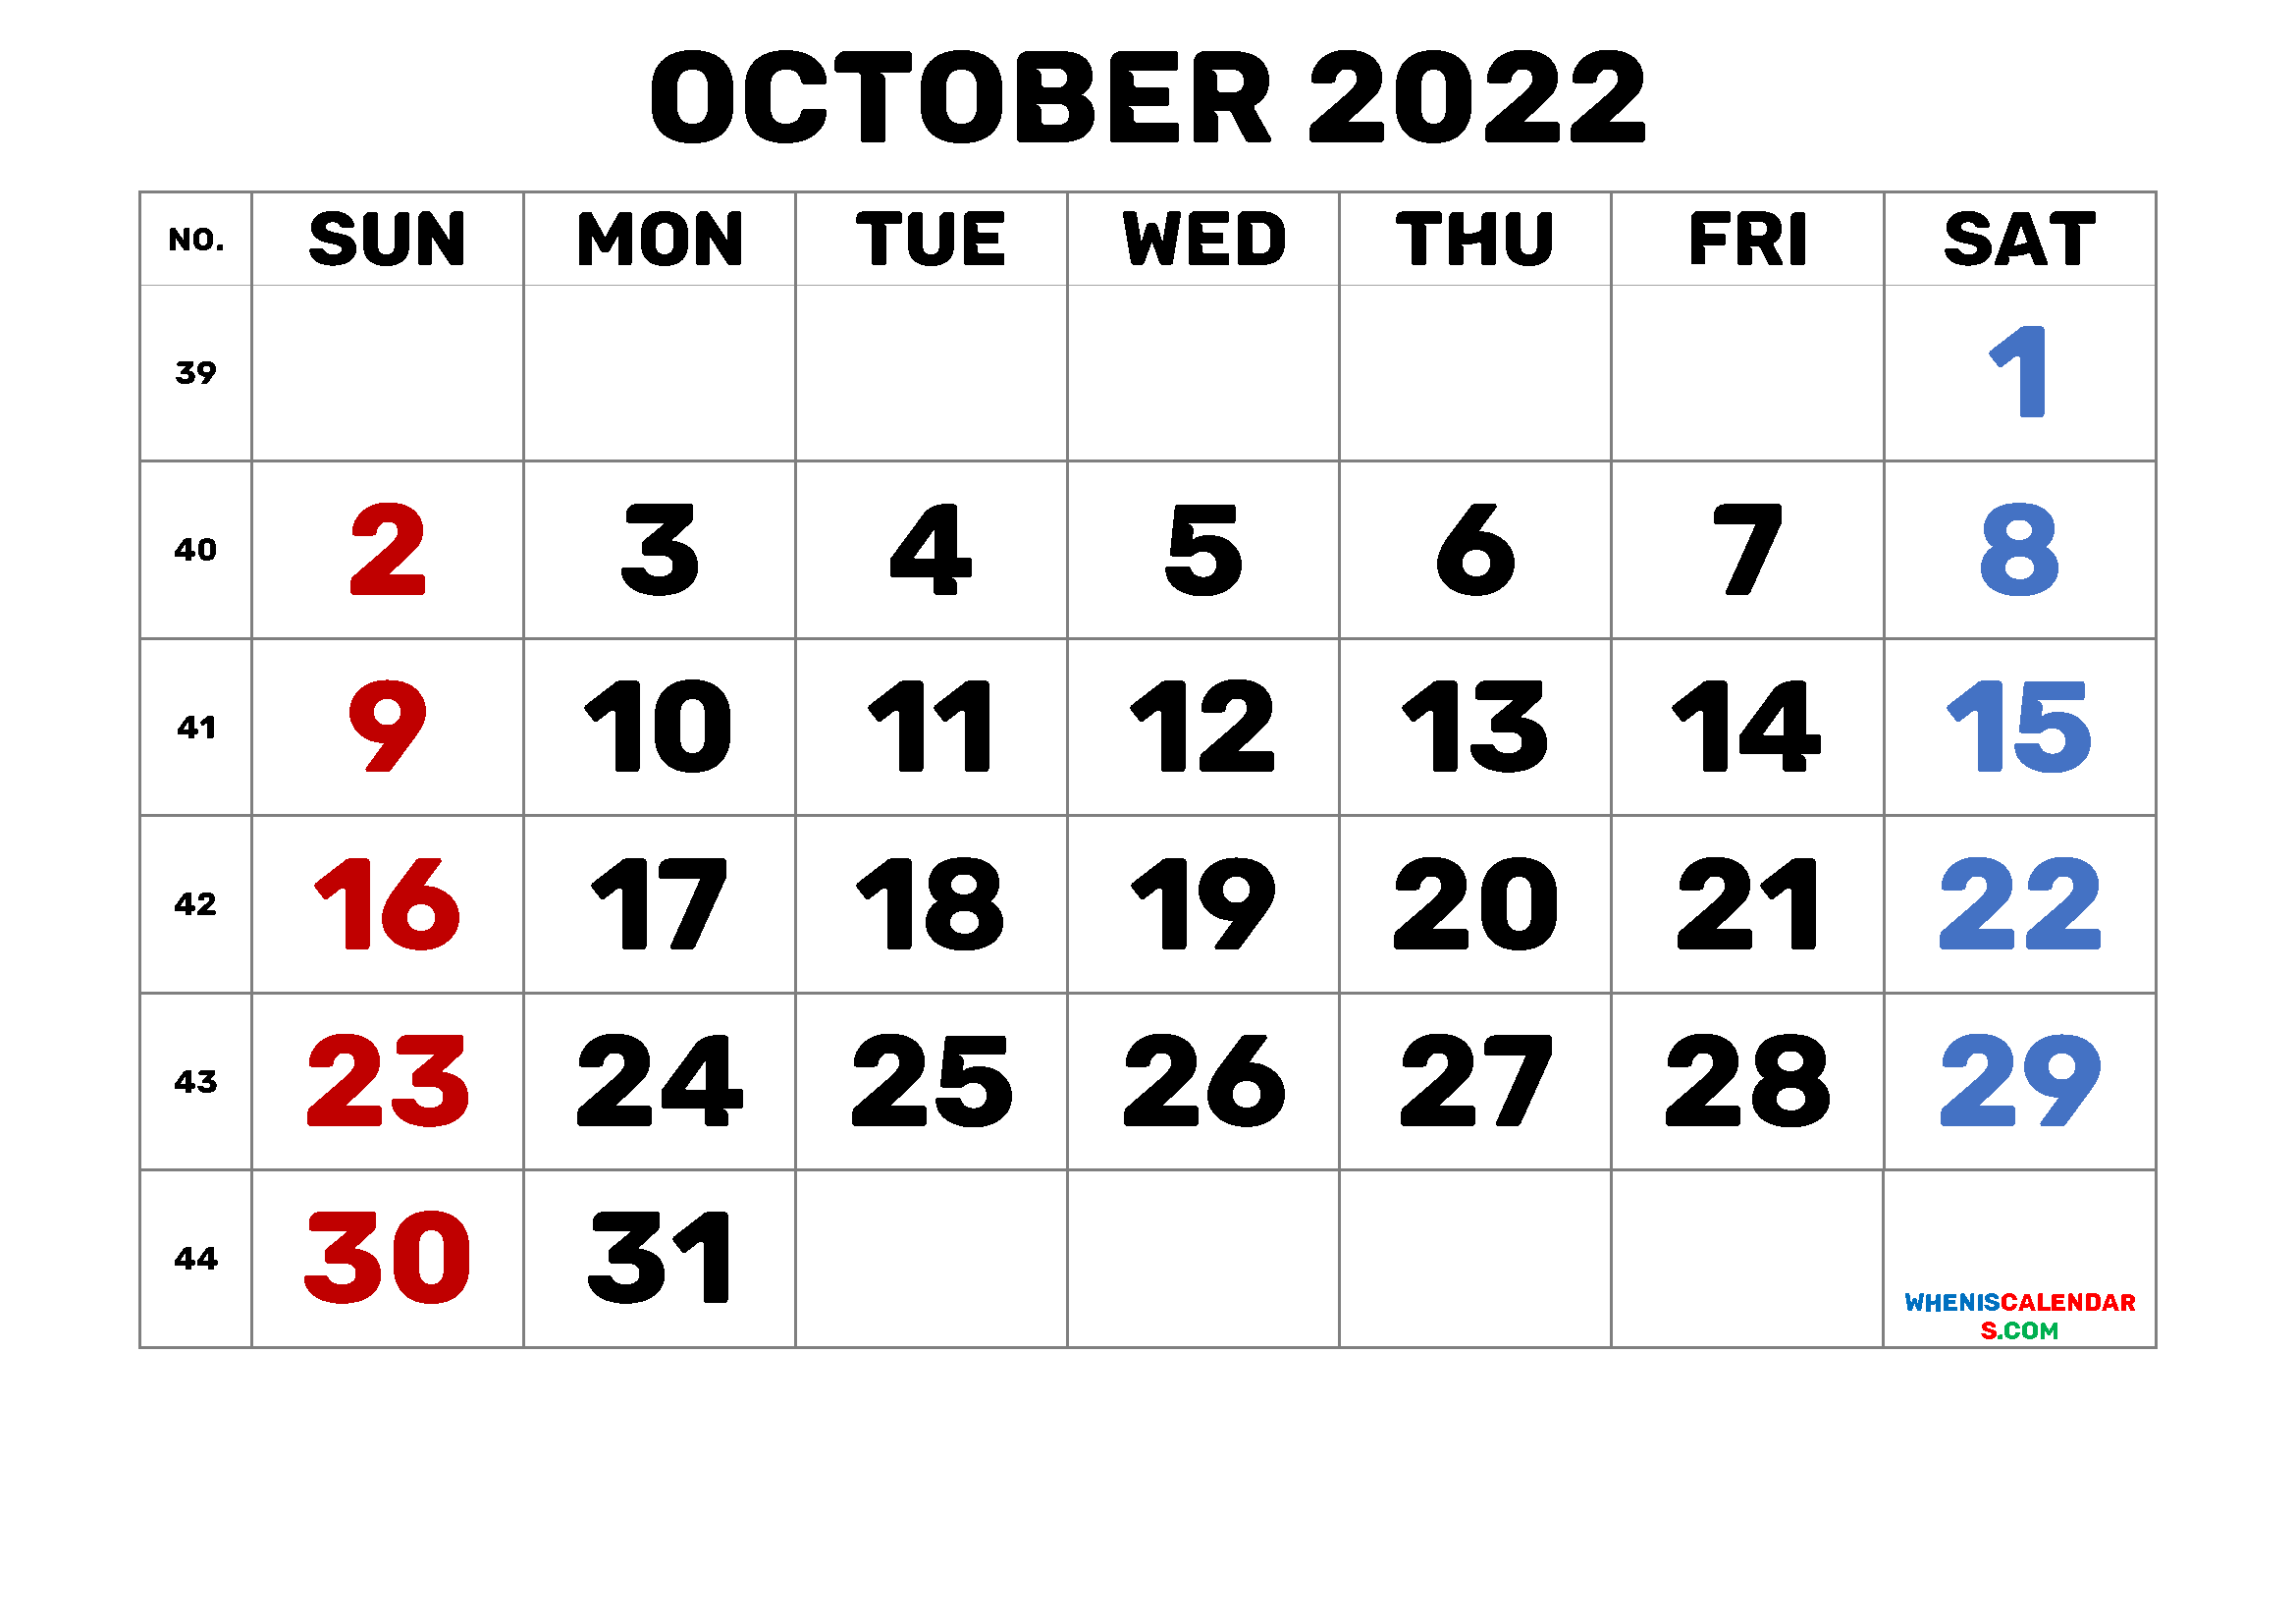 Monthly Calendar October 2022.Calendar October 2022 Printable Free 1 Month 1 Page 2021 Free Printable